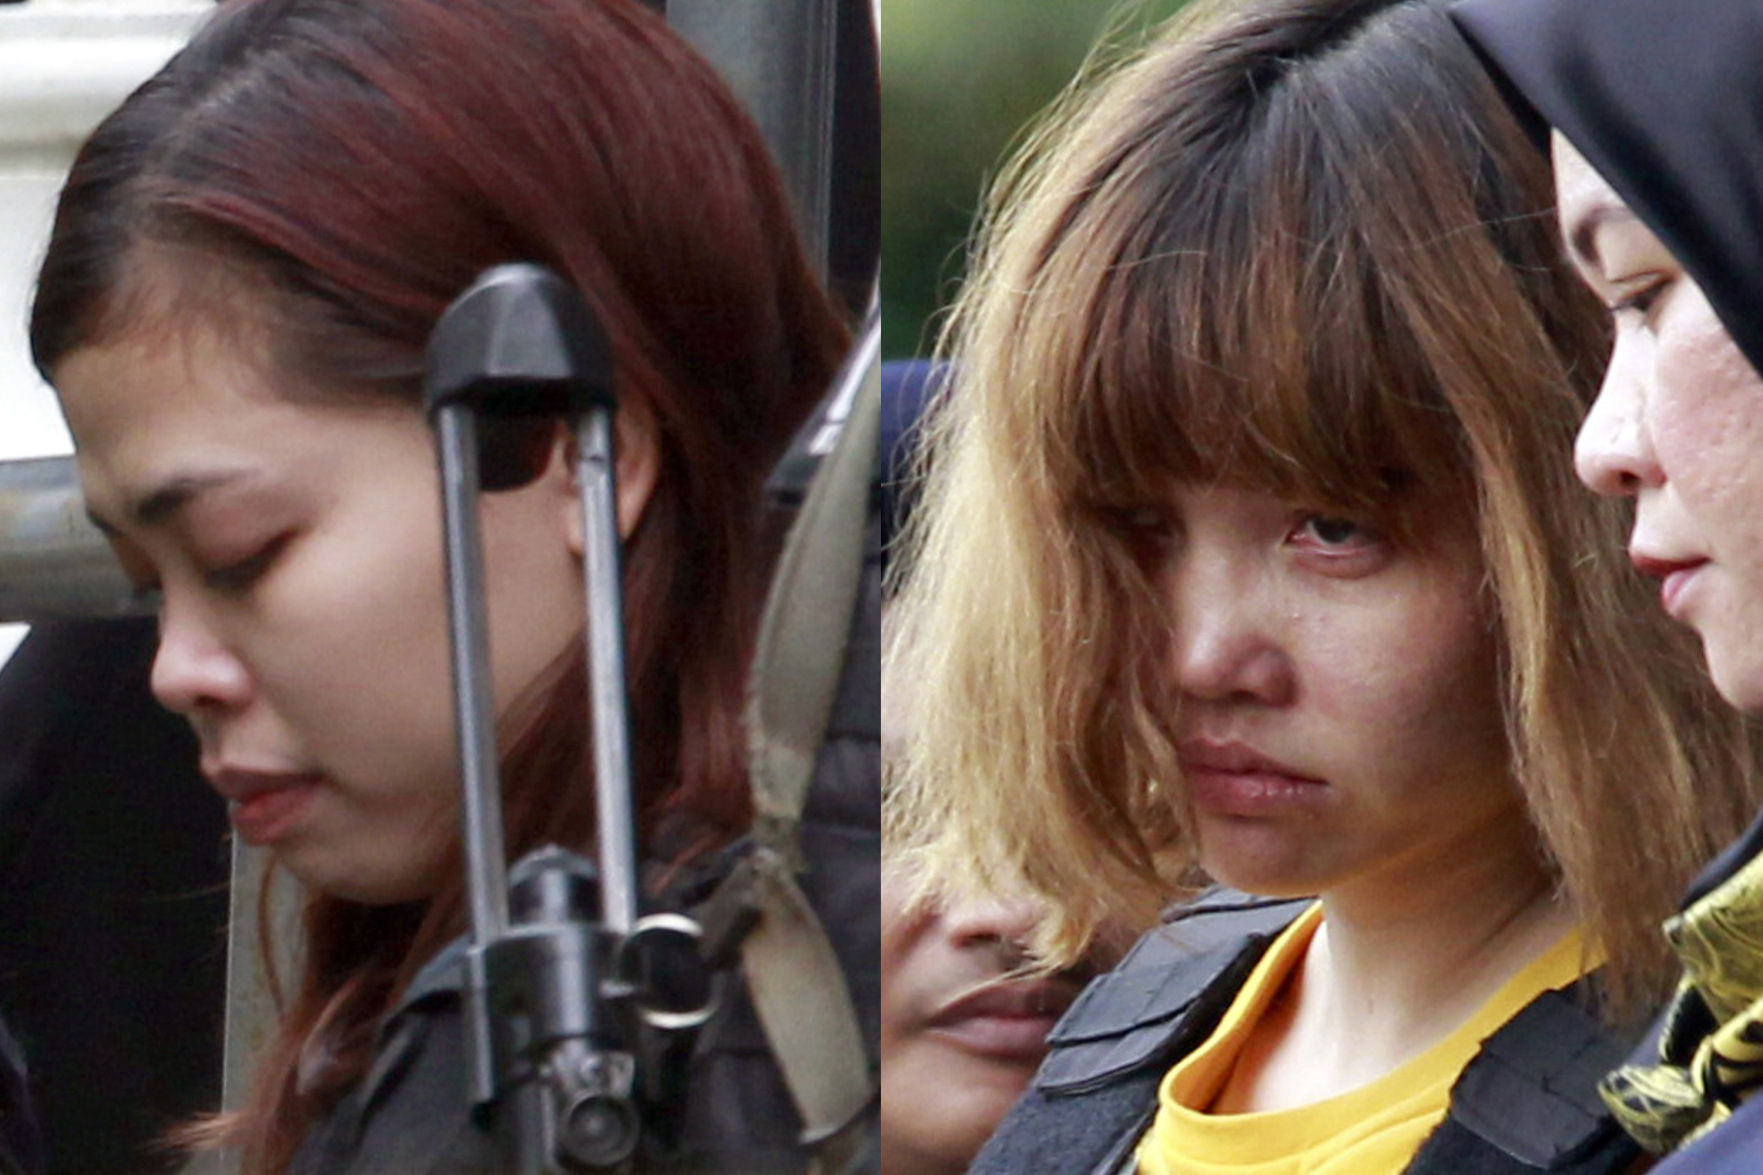 Trial dates fixed for Jong-nam's accused murderers